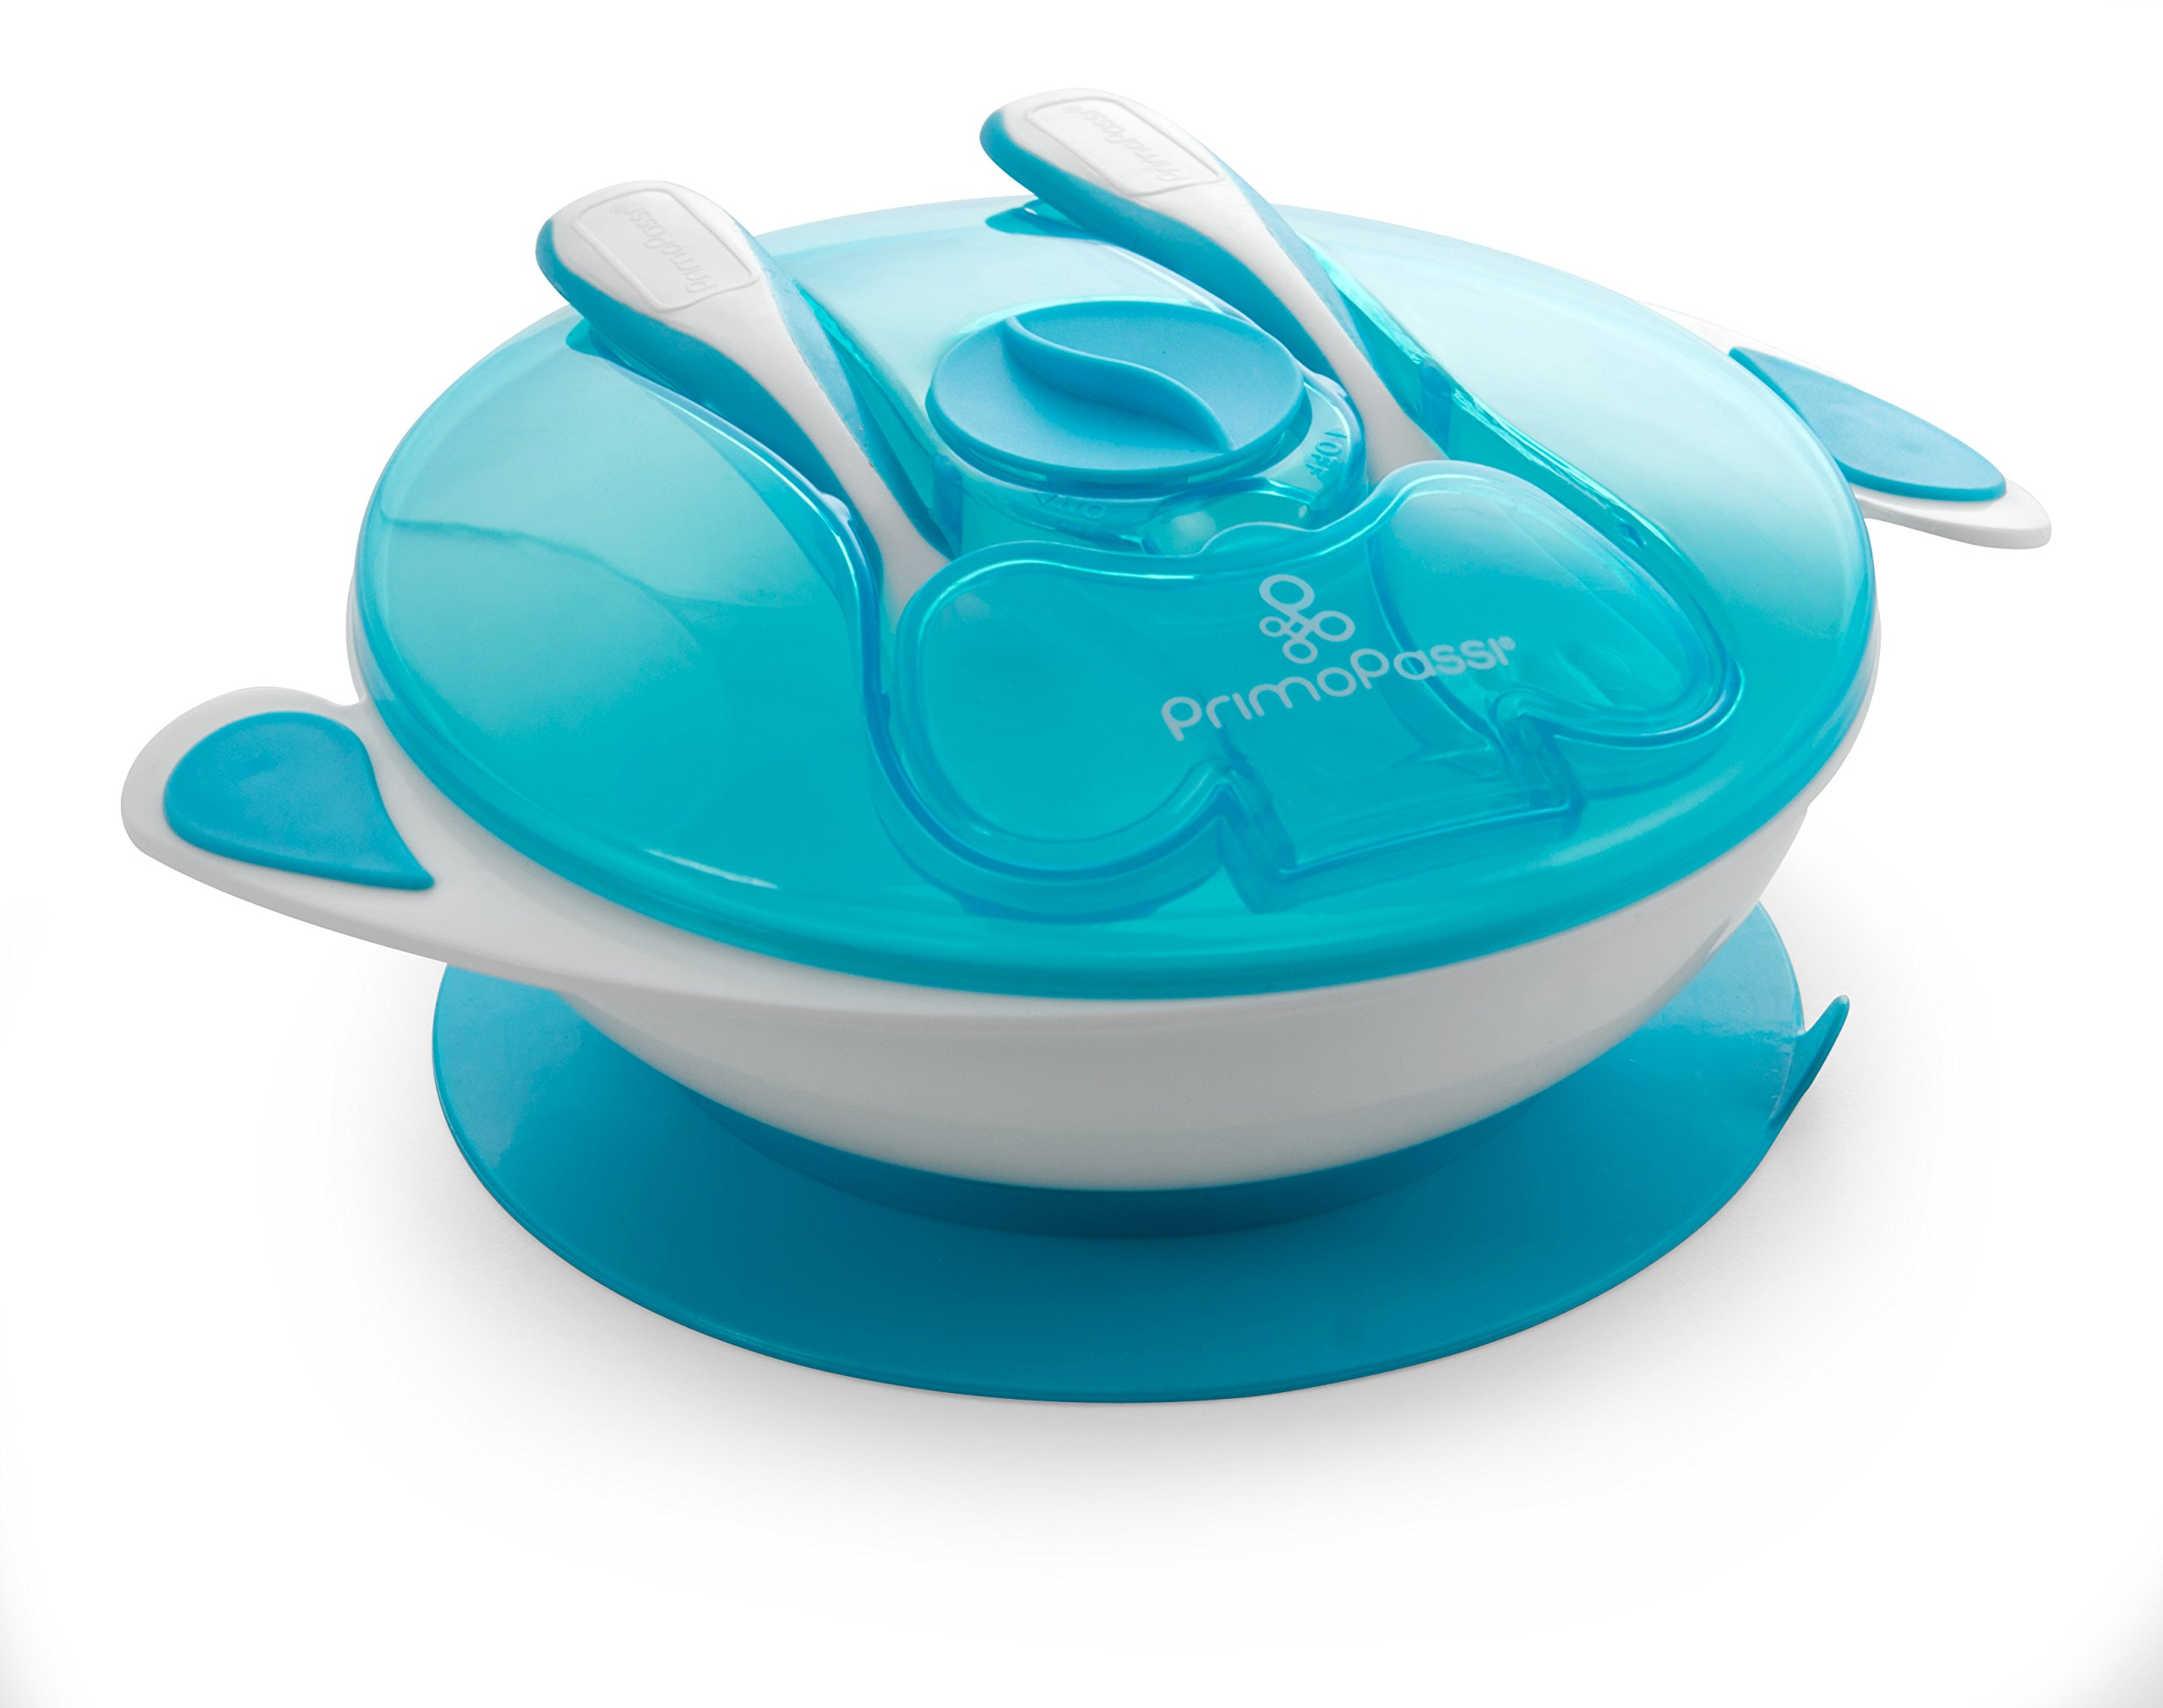 Primo Passi Baby Suction Bowl with Utensils, Fork & Spoon   Baby Bowls   Bowl for Babies (Blue)